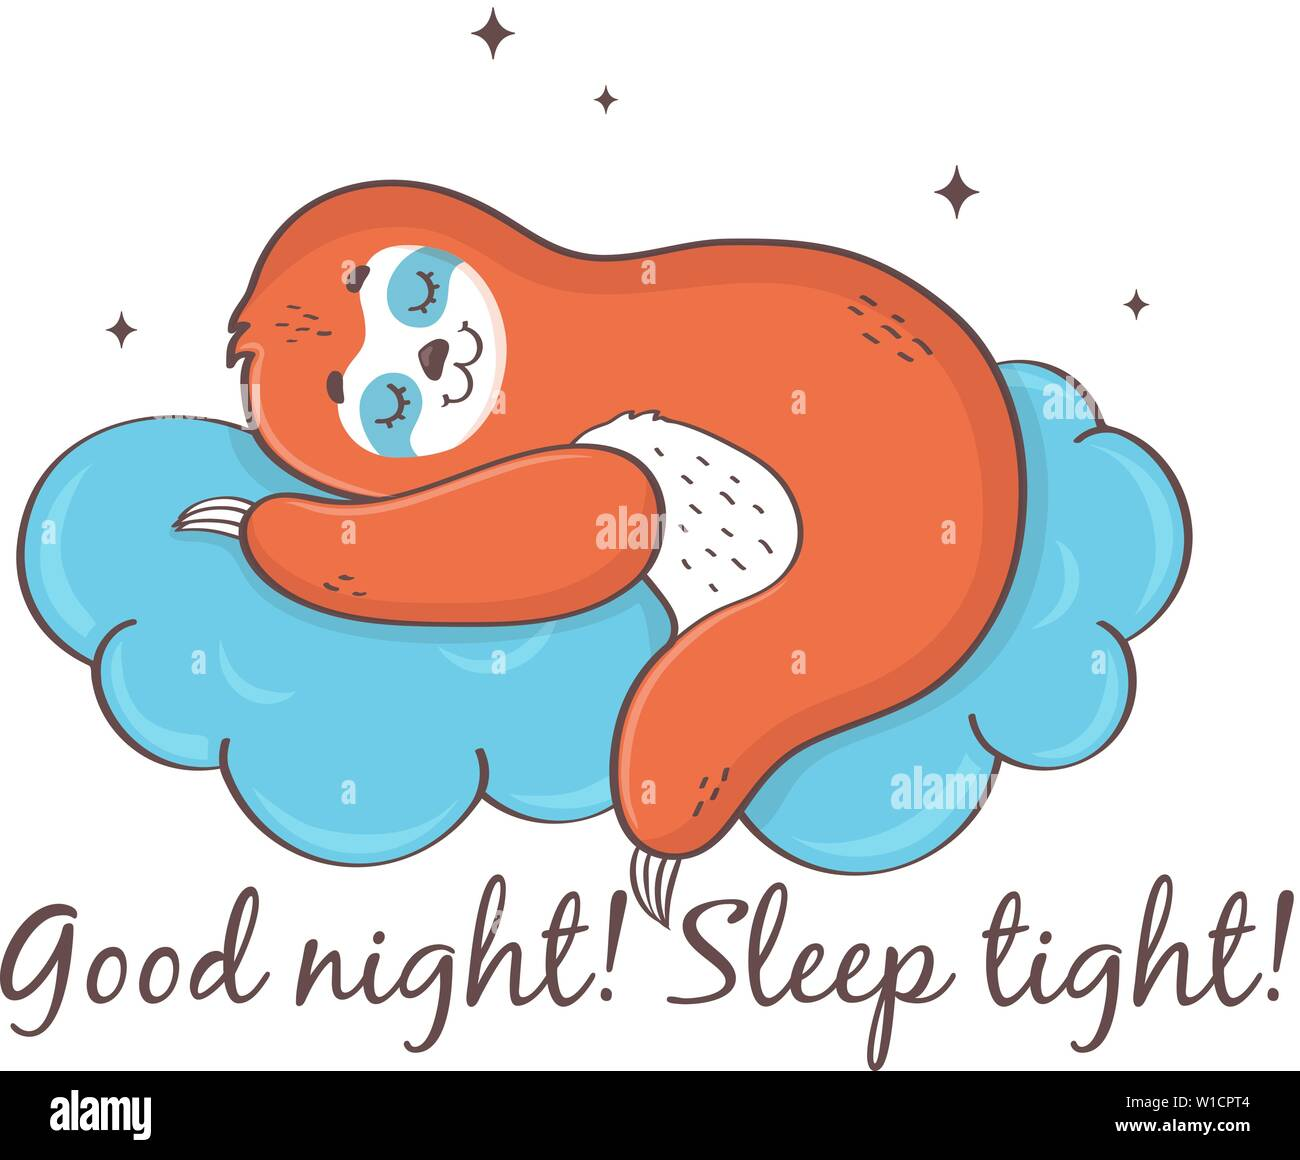 Sloth sleeping on a cloud. Good night! Sleep tight! Cute vector illustration isolated on white background. Stock Vector